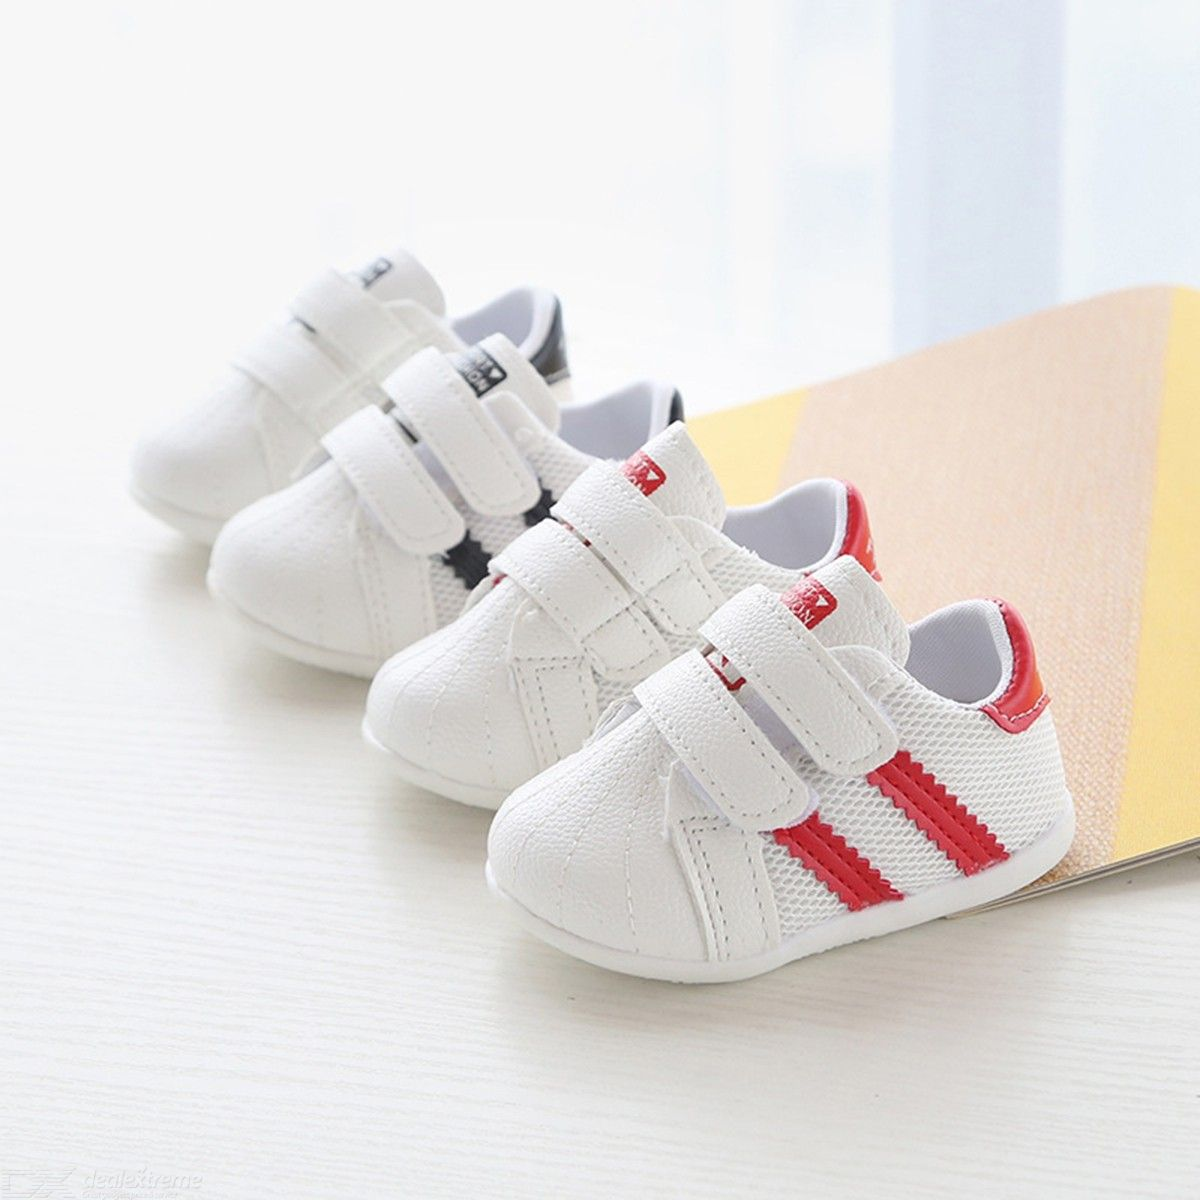 Comfort Soft Sole Baby Shoes Lightweight Breathable First Walker Shoes For Toddlers